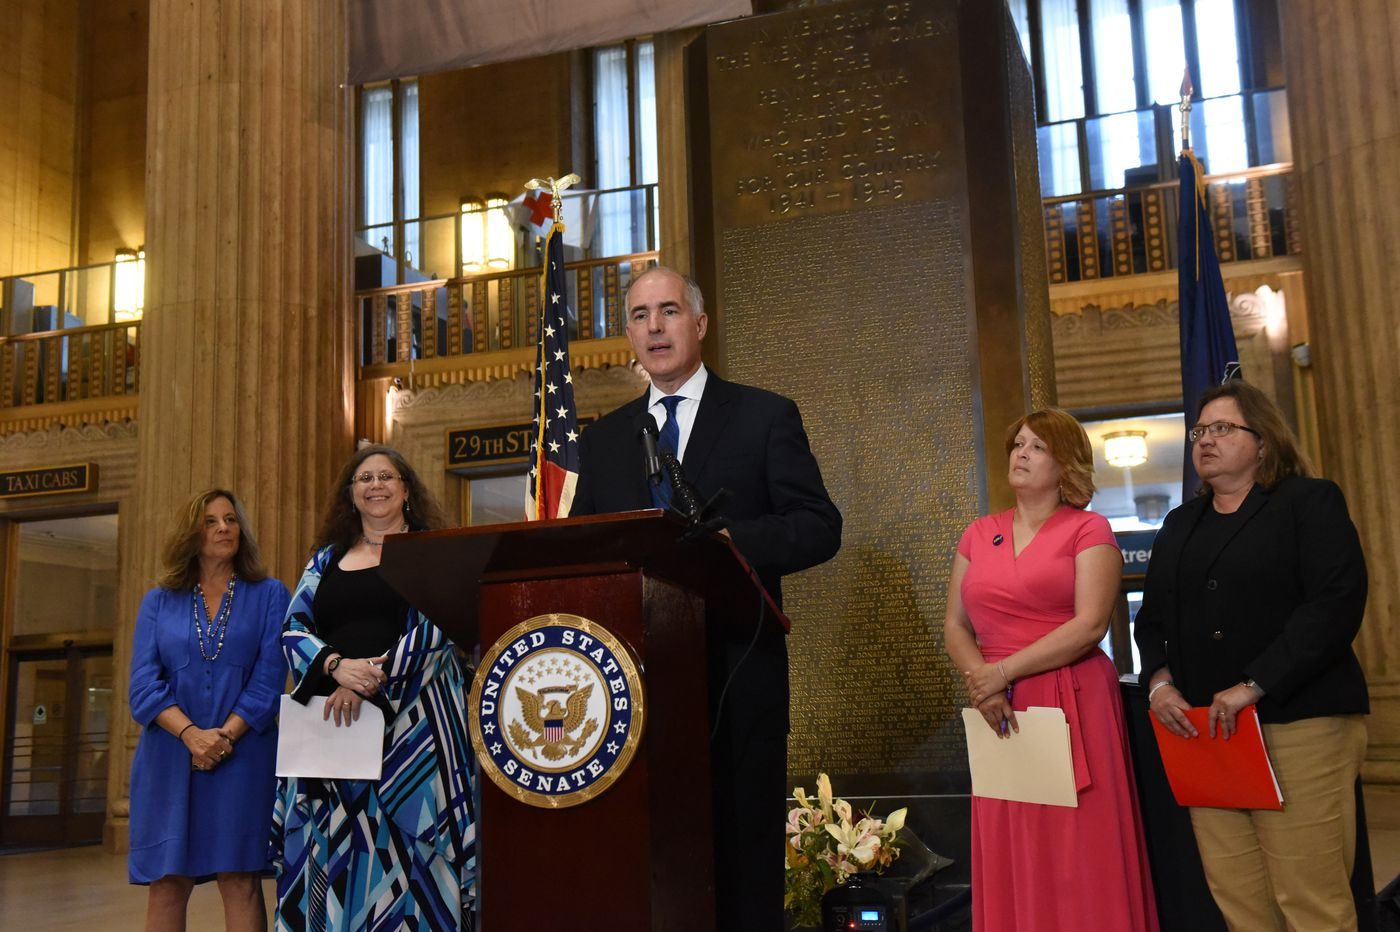 Pat Toomey used Senate tradition to block an Obama Pa. judicial pick. GOP leaders won't give Bob Casey the same deference